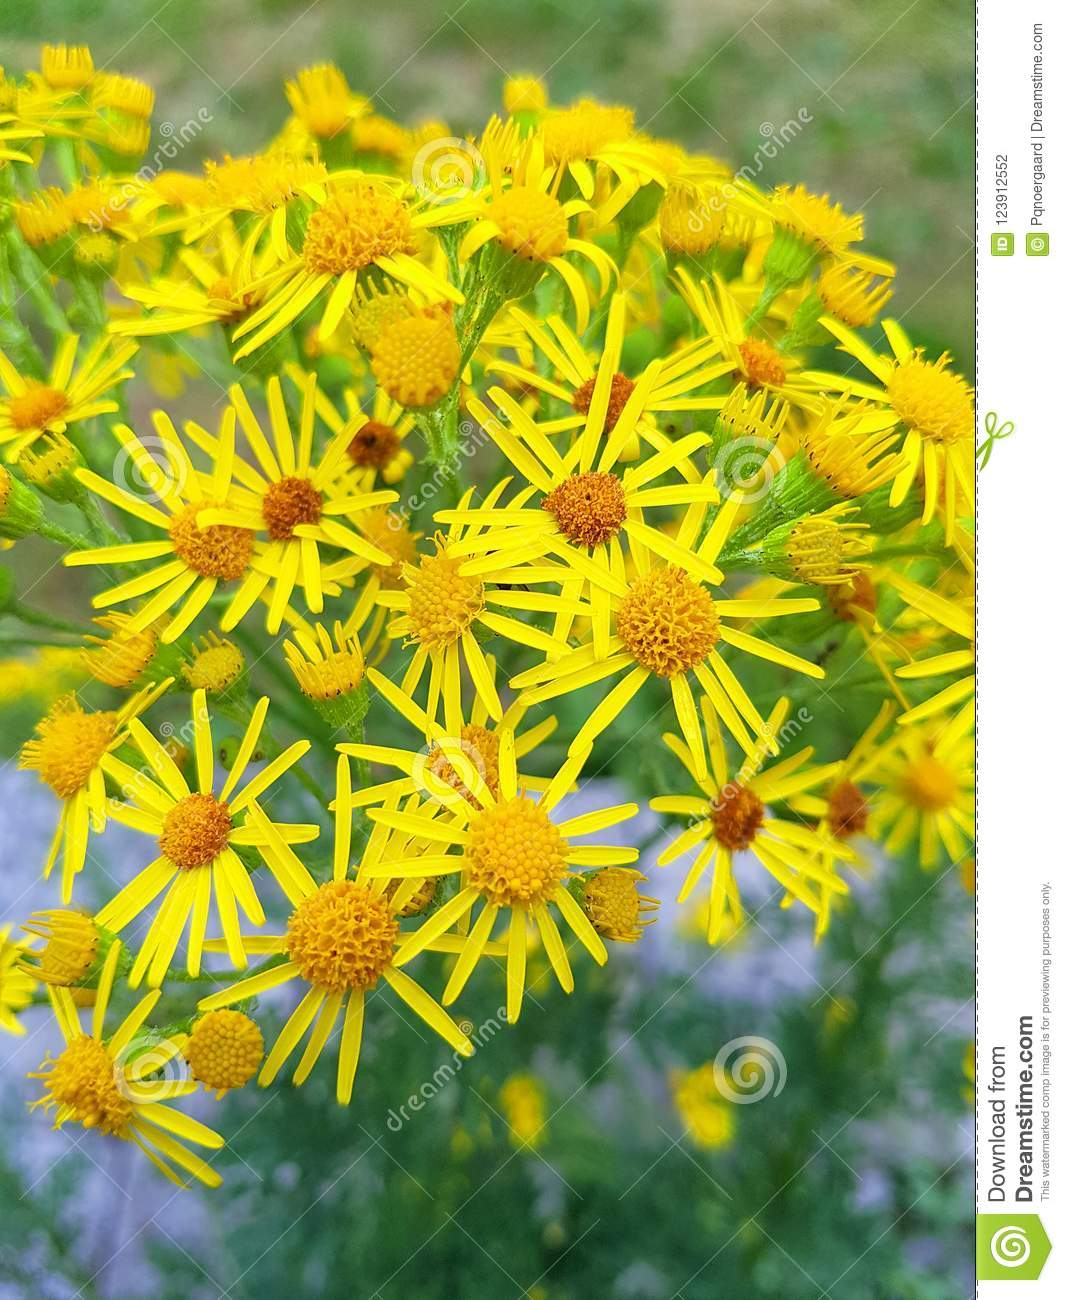 Tansy ragwort a poisonous flower when eaten by horses or cows download tansy ragwort a poisonous flower when eaten by horses or cows stock photo mightylinksfo